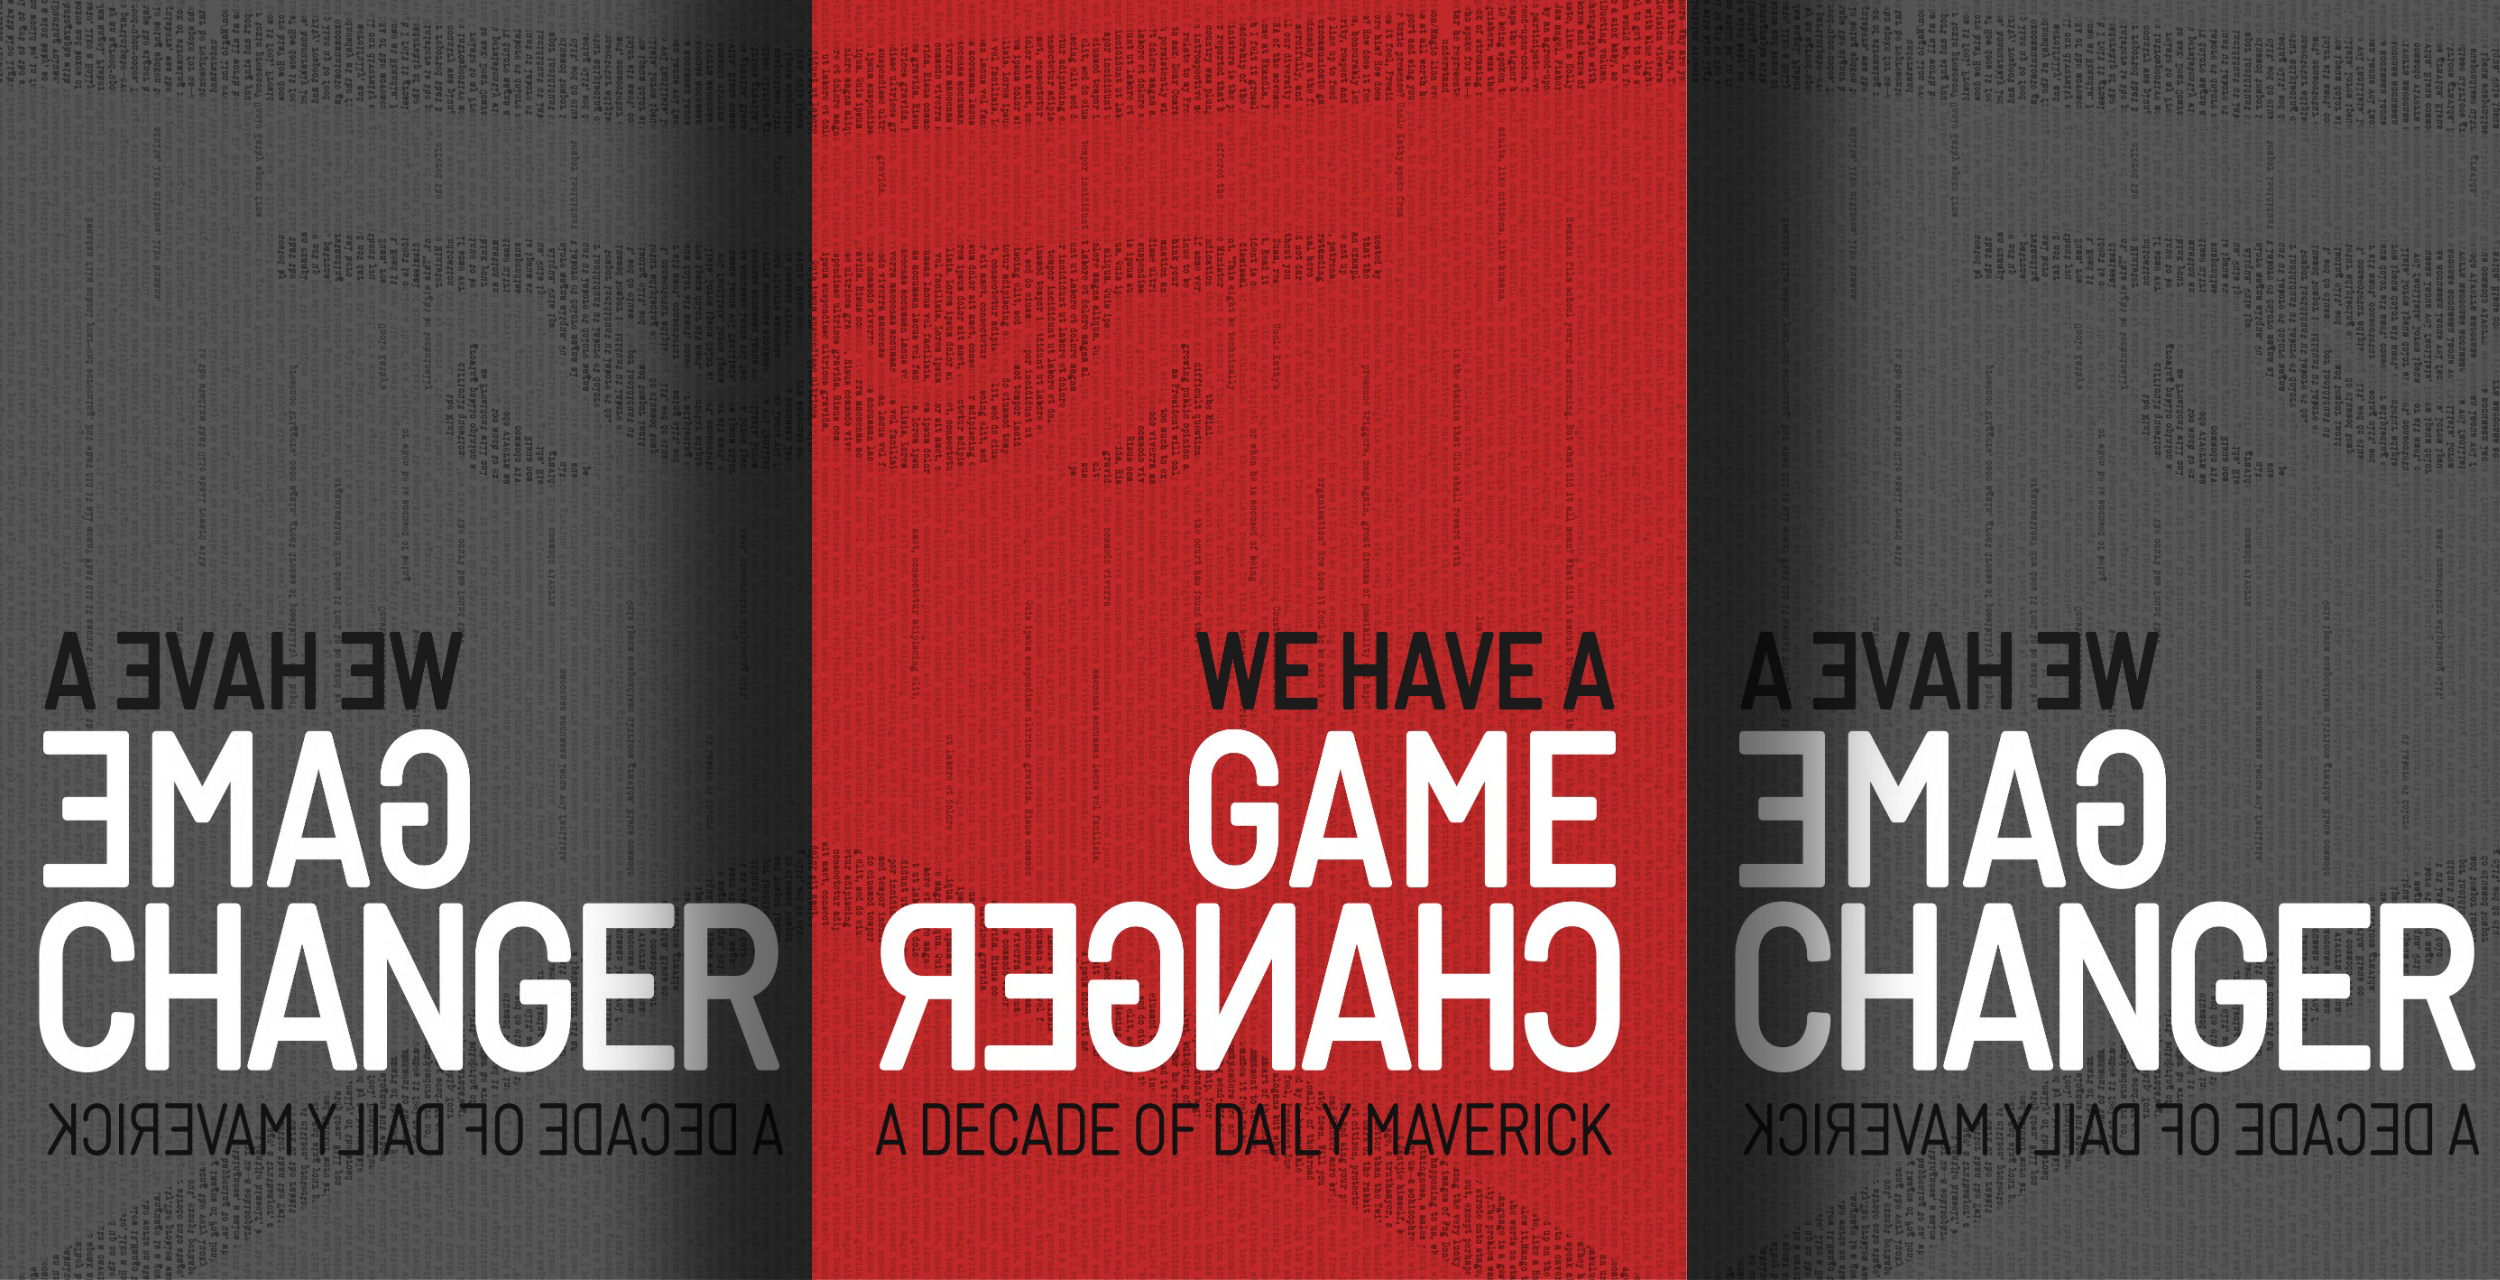 Excerpt from We Have A Game Changer: A Decade of Daily Maverick